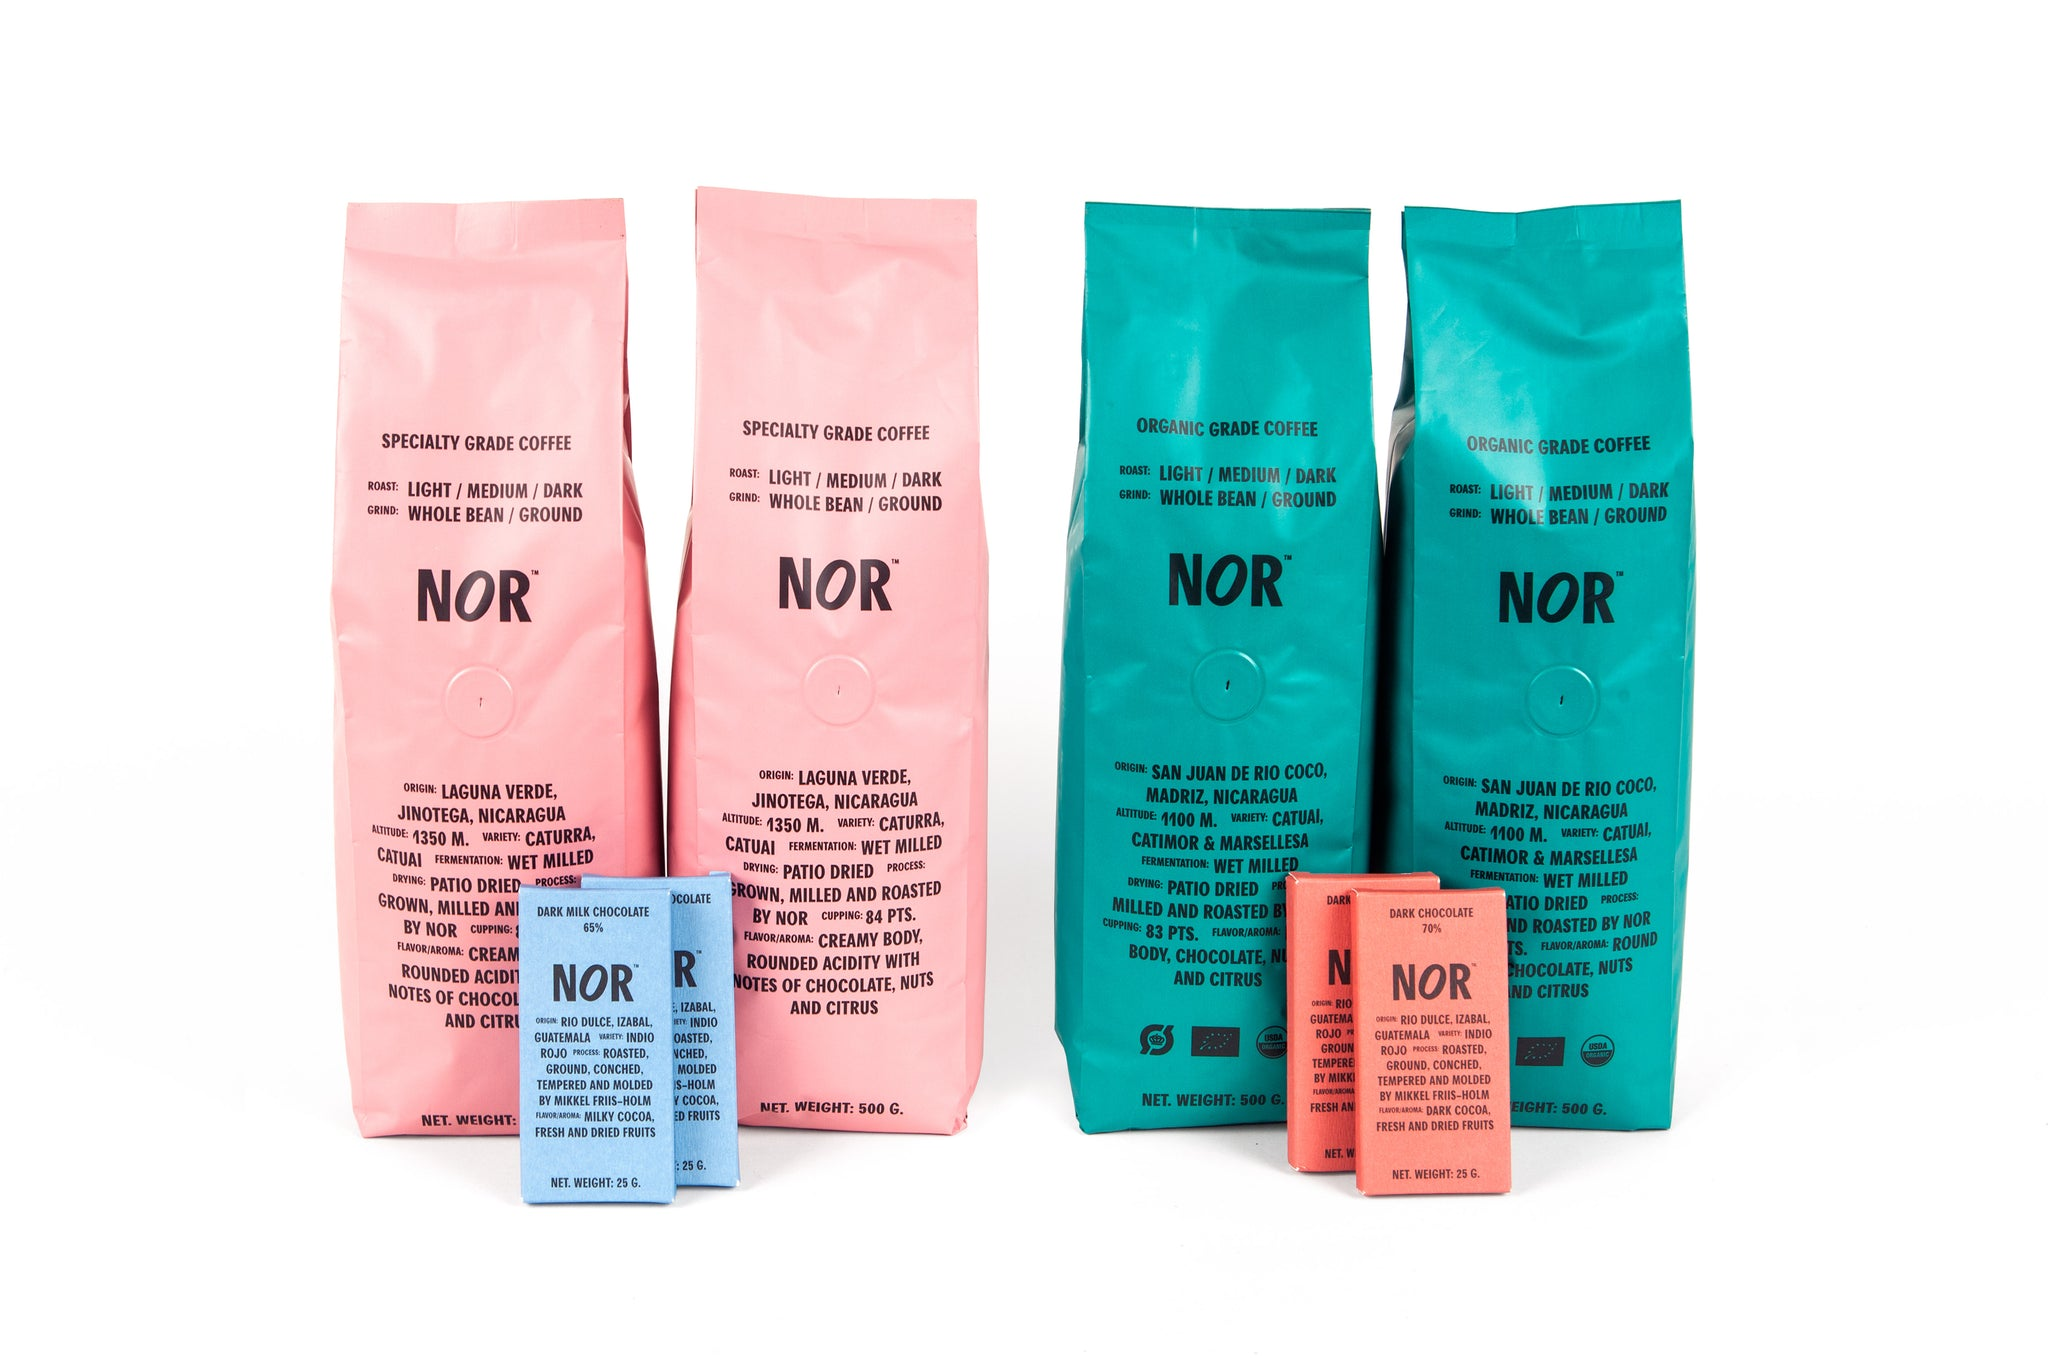 Two bags of NOR specialty coffee (500g each)